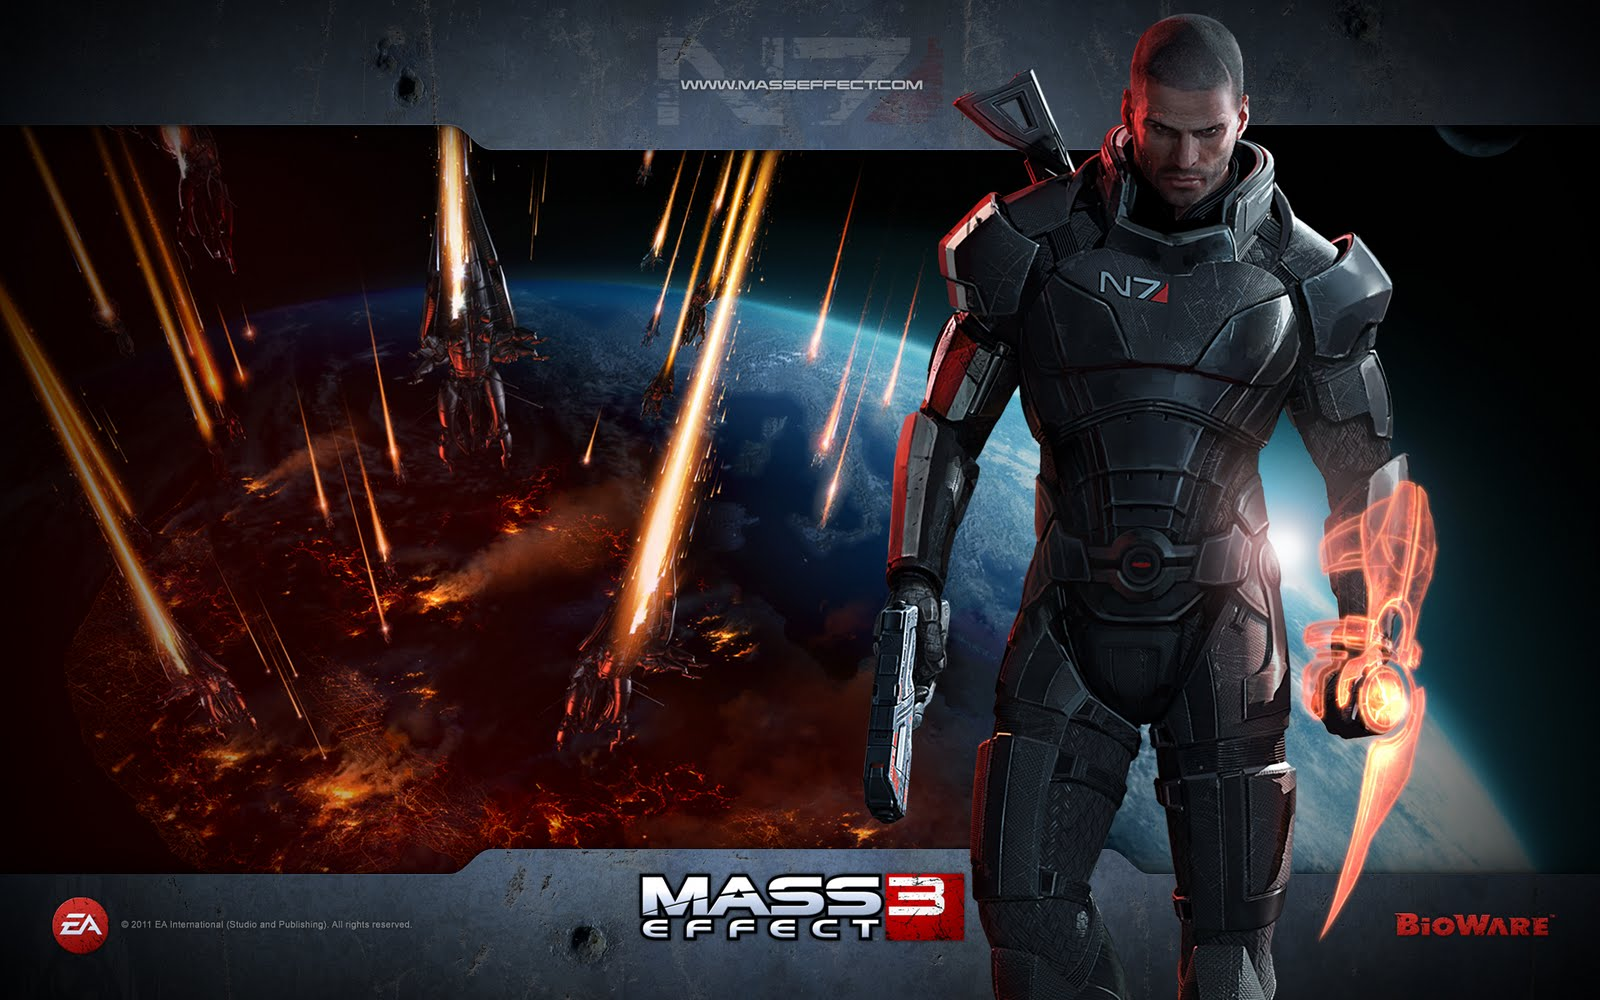 Awesome HD Wallpapers HD Wallpapers Awesome Mass Effect 3 Game 1600x1000